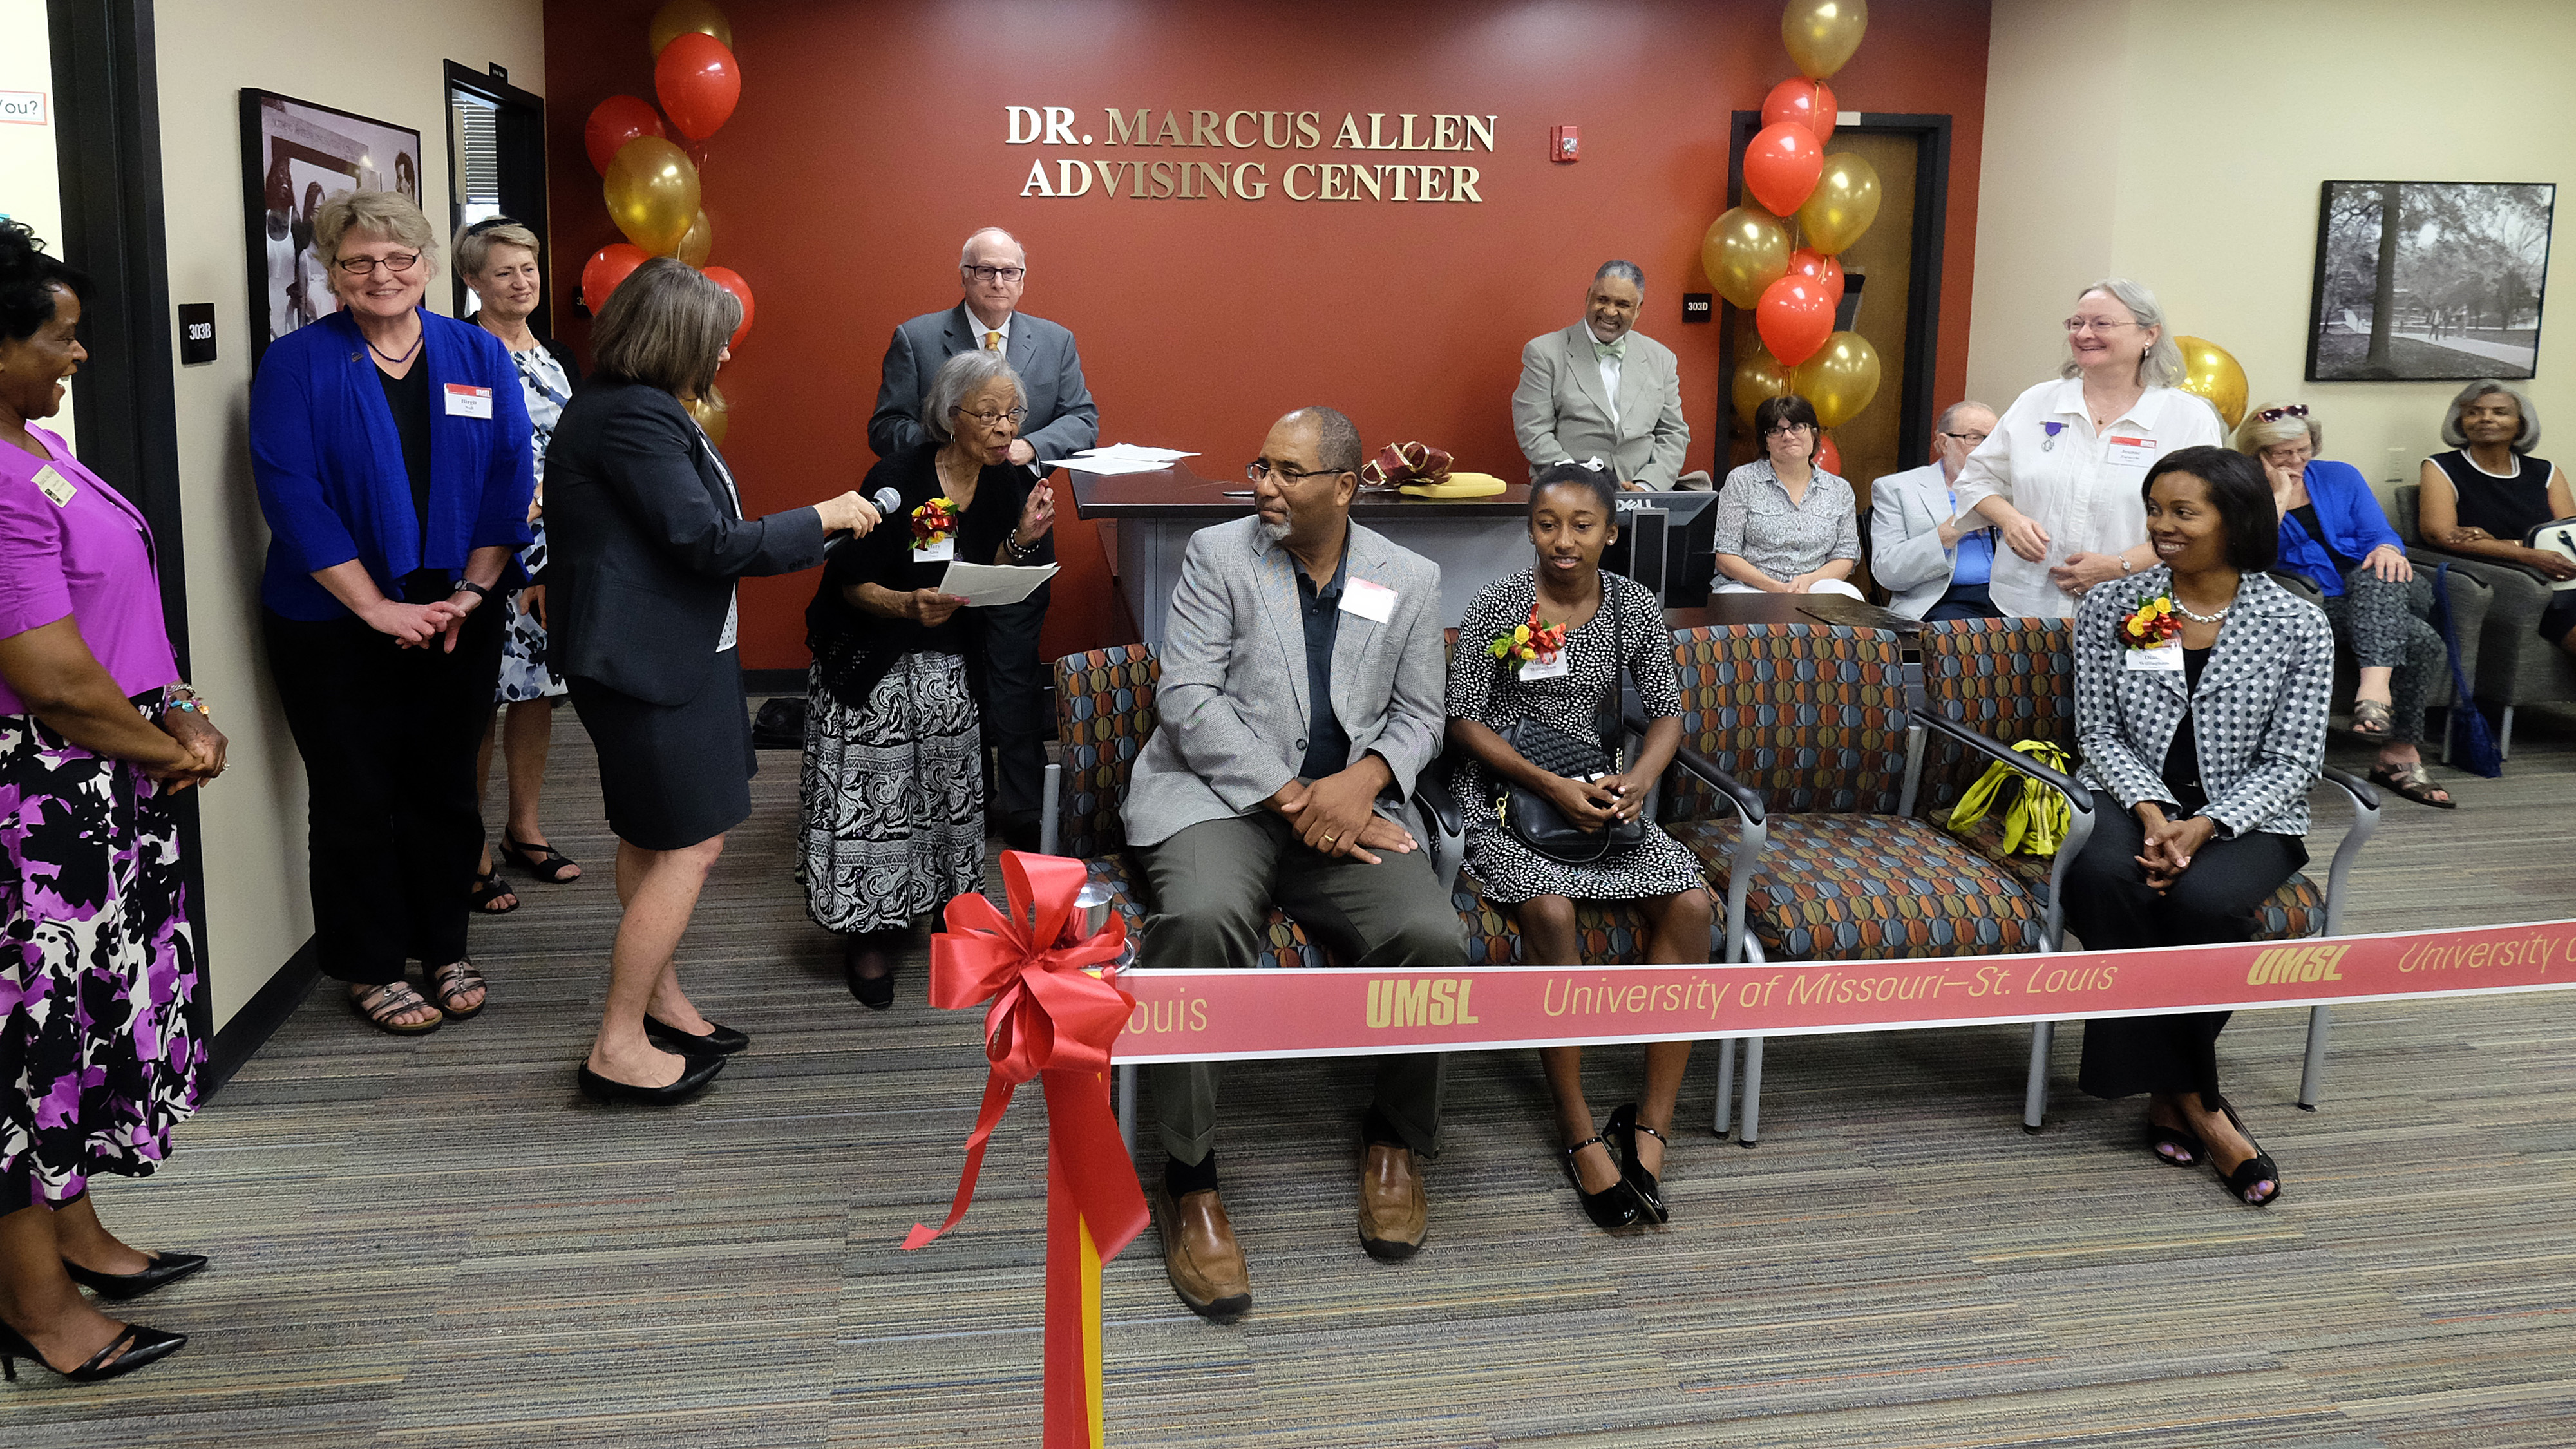 Marcus Allen Advising Center dedicated to UMSL's first African American faculty member